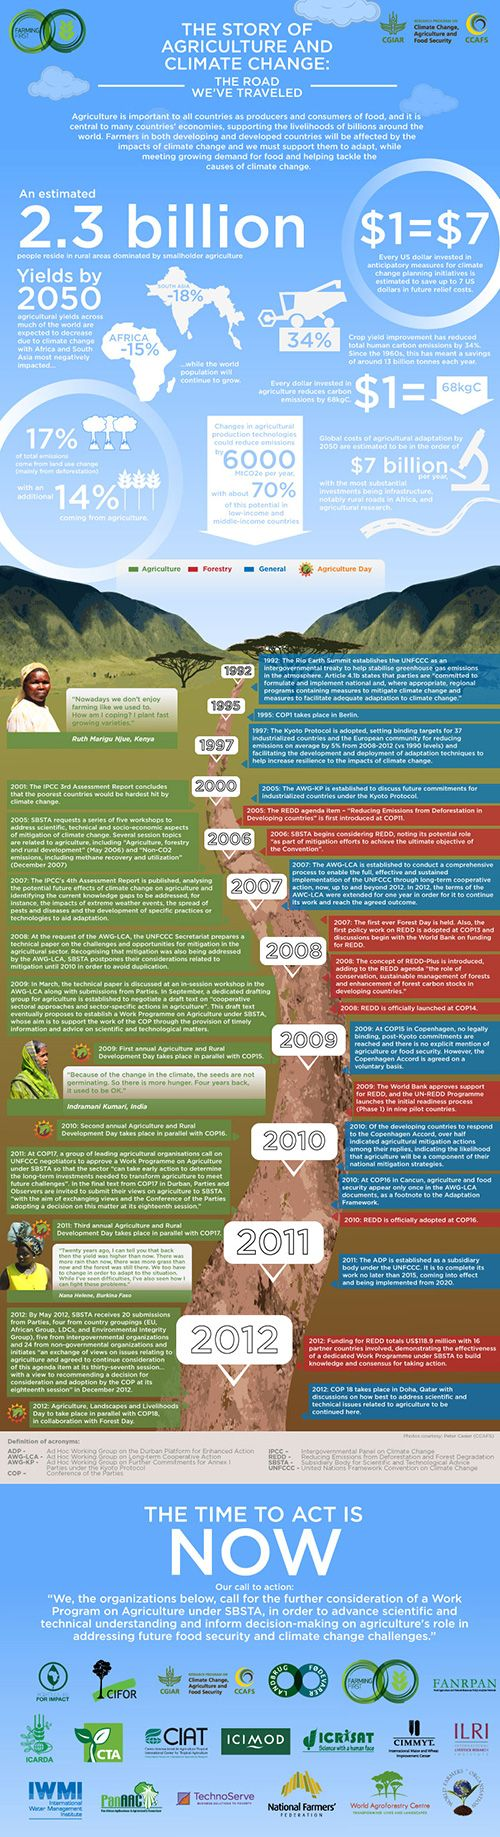 The Story of Agriculture and Climate Change